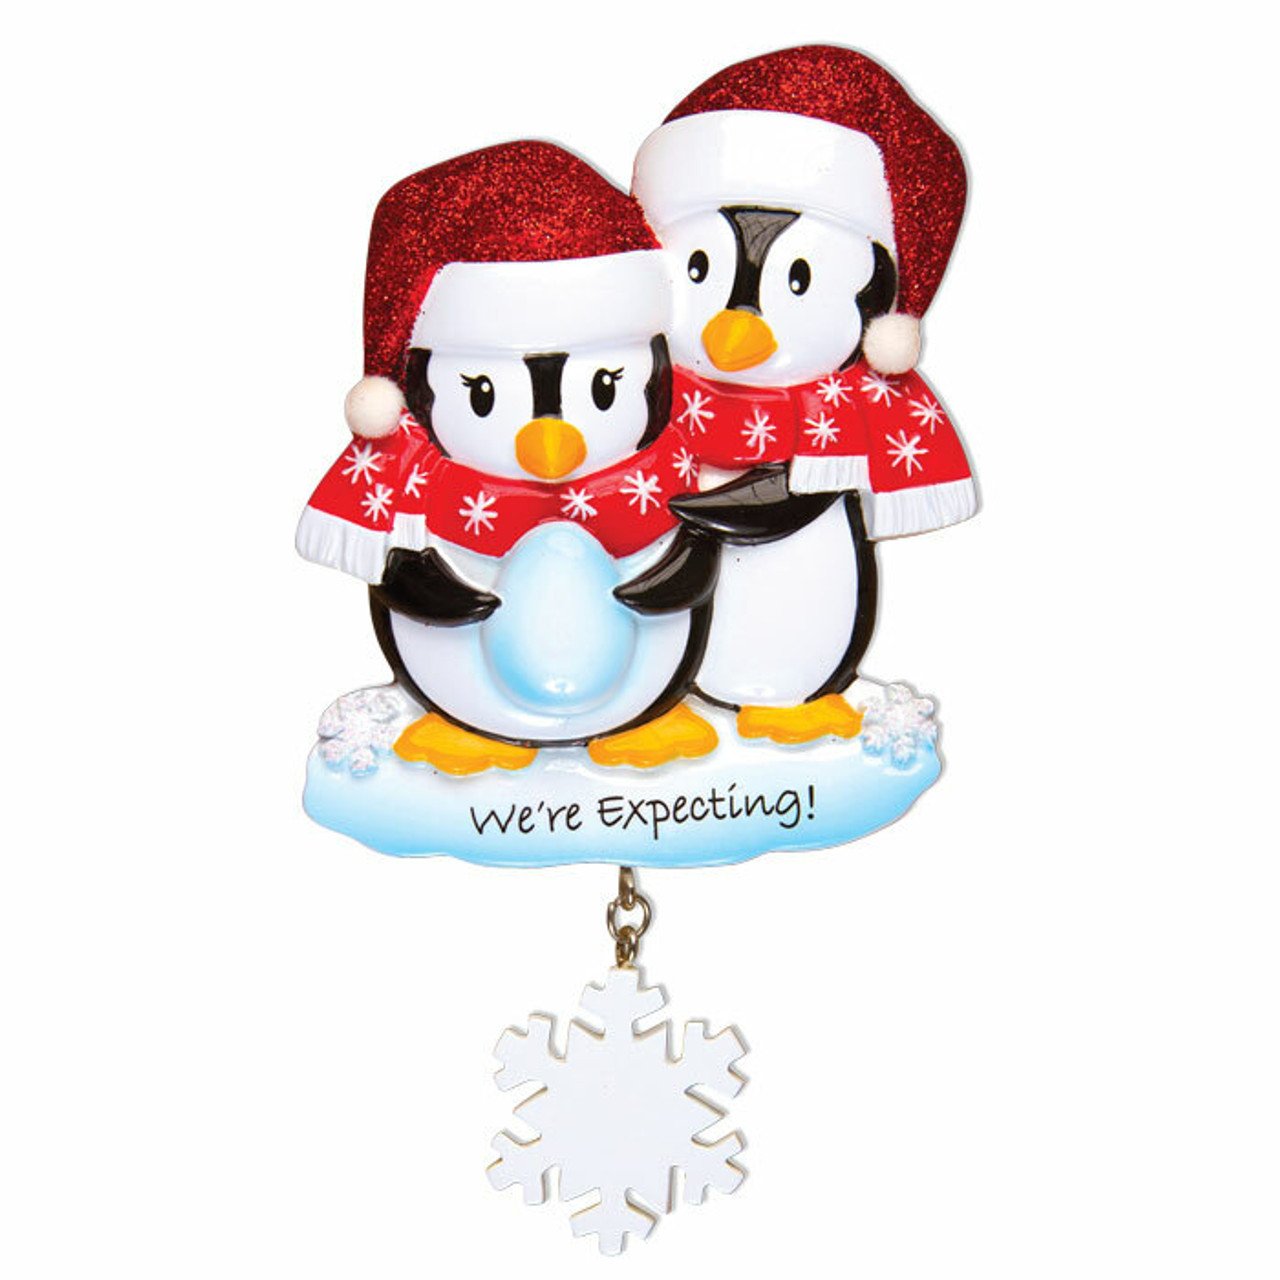 We\u2019re Expecting Personalized Christmas Ornament Pregnant Snowman Couple Expecting Parents Mom to be Dad to be Pregnancy announcement